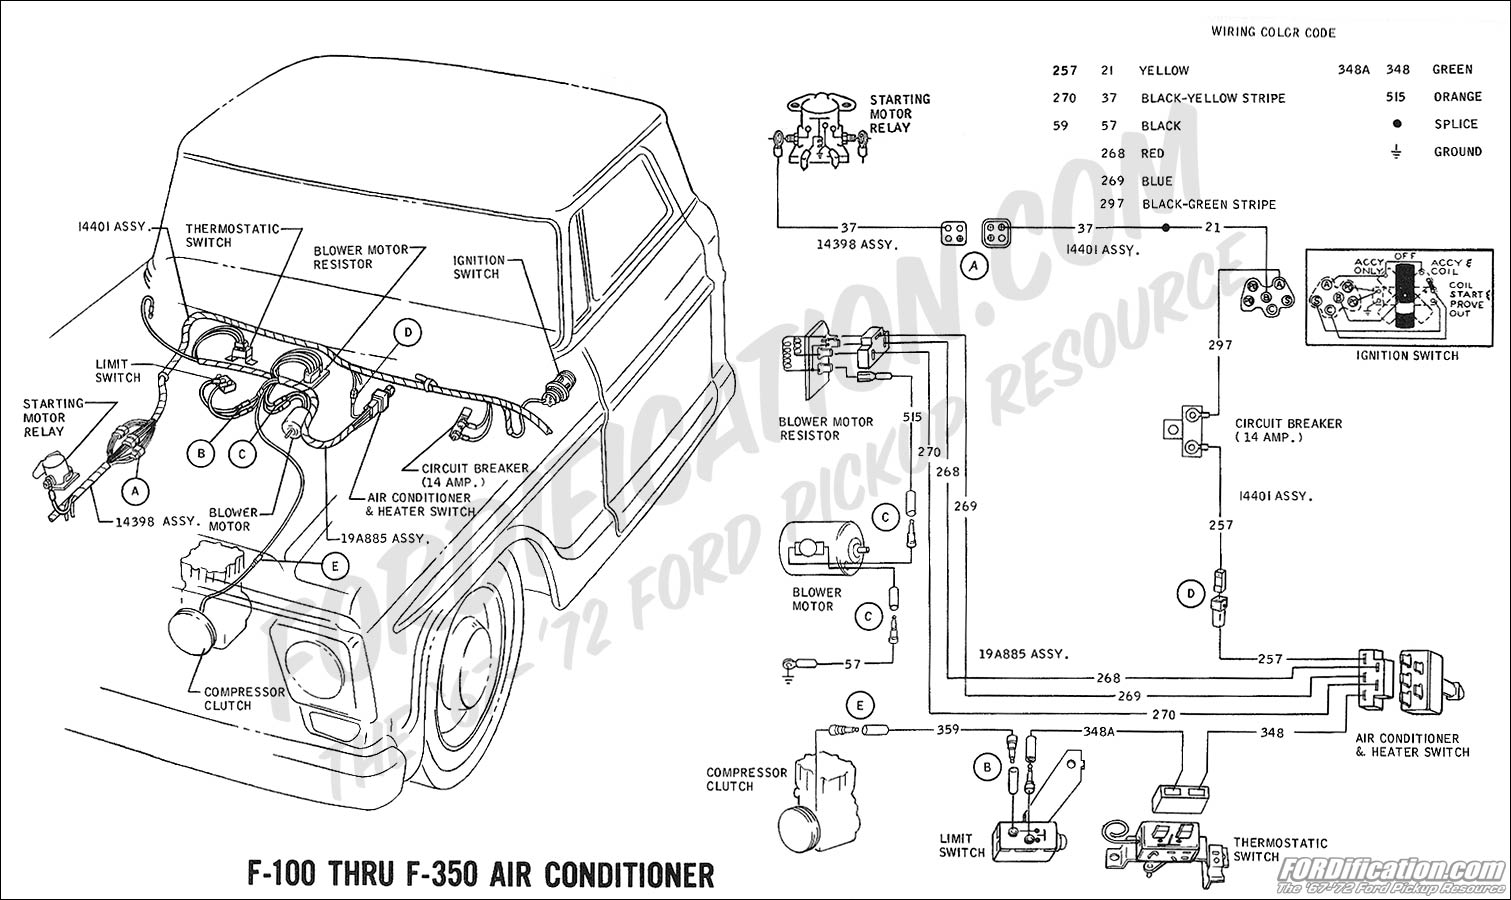 wiring_69ac 1999 ford f 150 radio wiring diagram chevy truck wiring diagram wiring diagram mirrors 2009 ford f150 truck at creativeand.co